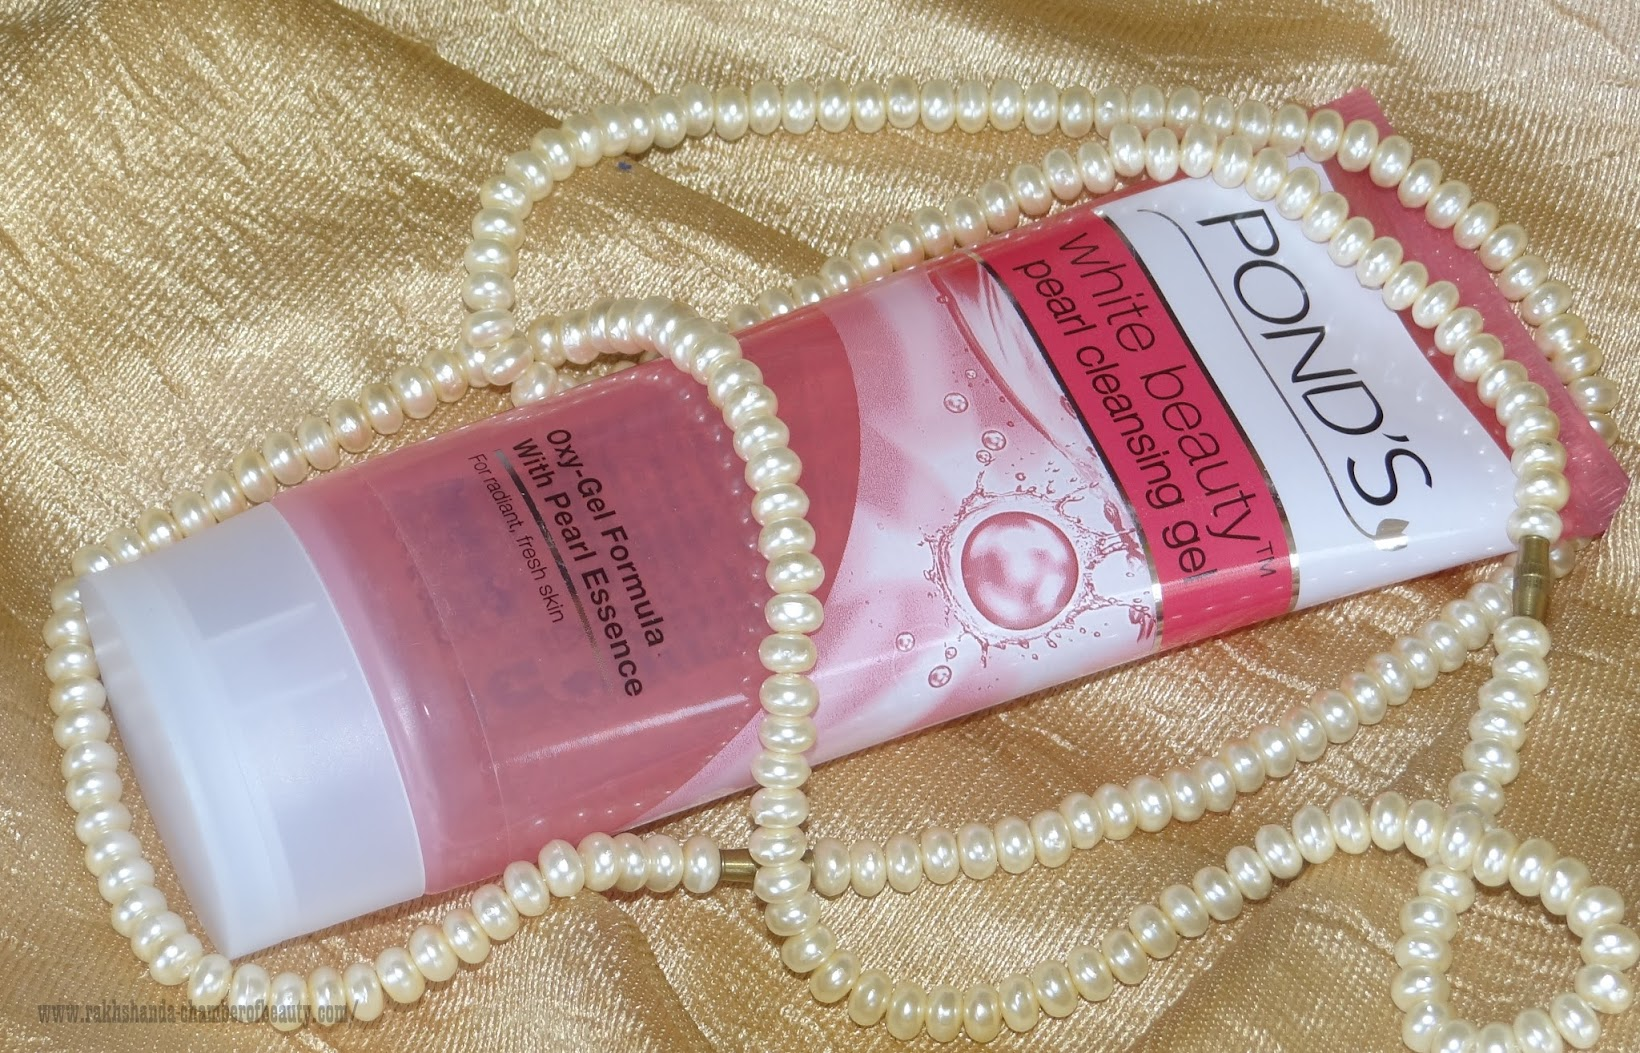 Pond's White Beauty Pearl Cleansing Gel- Review, Photos & price in India, Pond's White Beauty, Indian beauty blogger, Chamber of Beauty